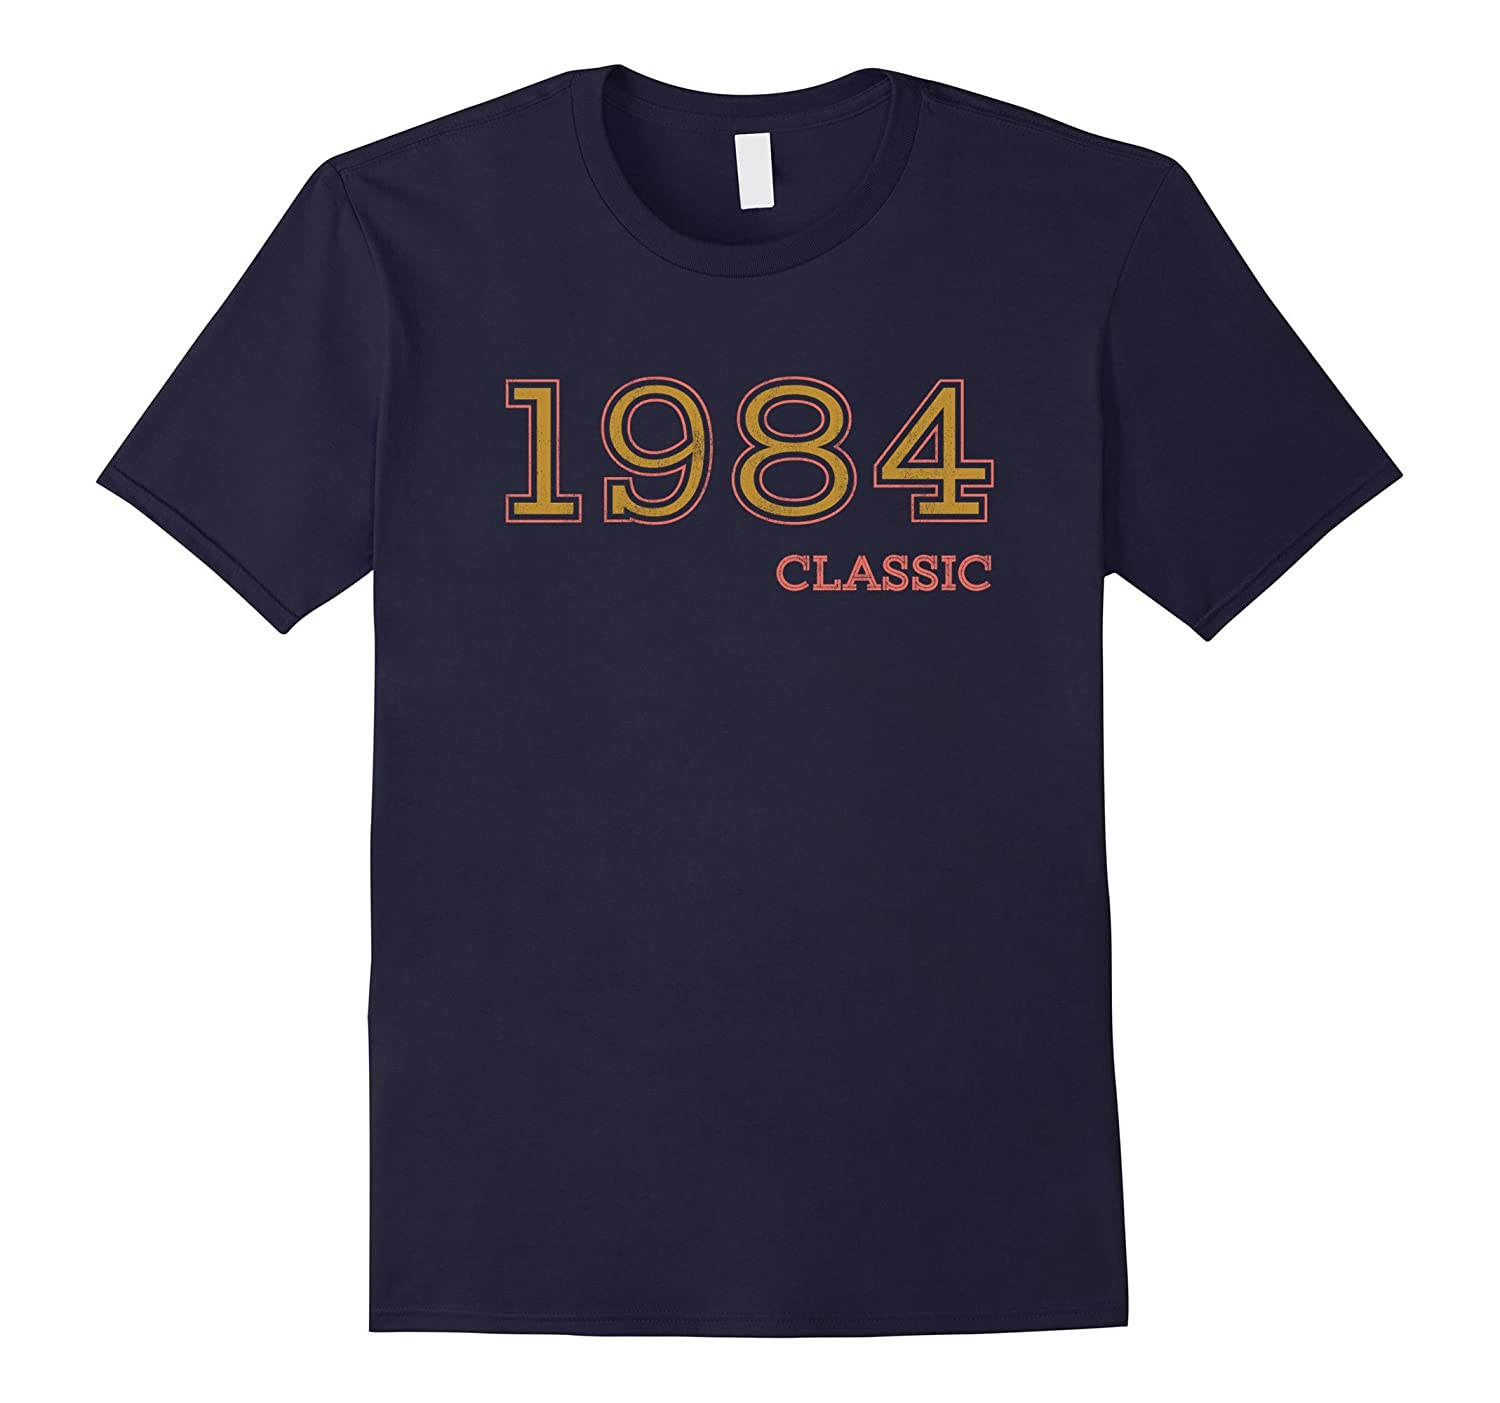 33th Birthday Funny Tshirt, Vintage 1984 Shirt, Gift Idea-FL